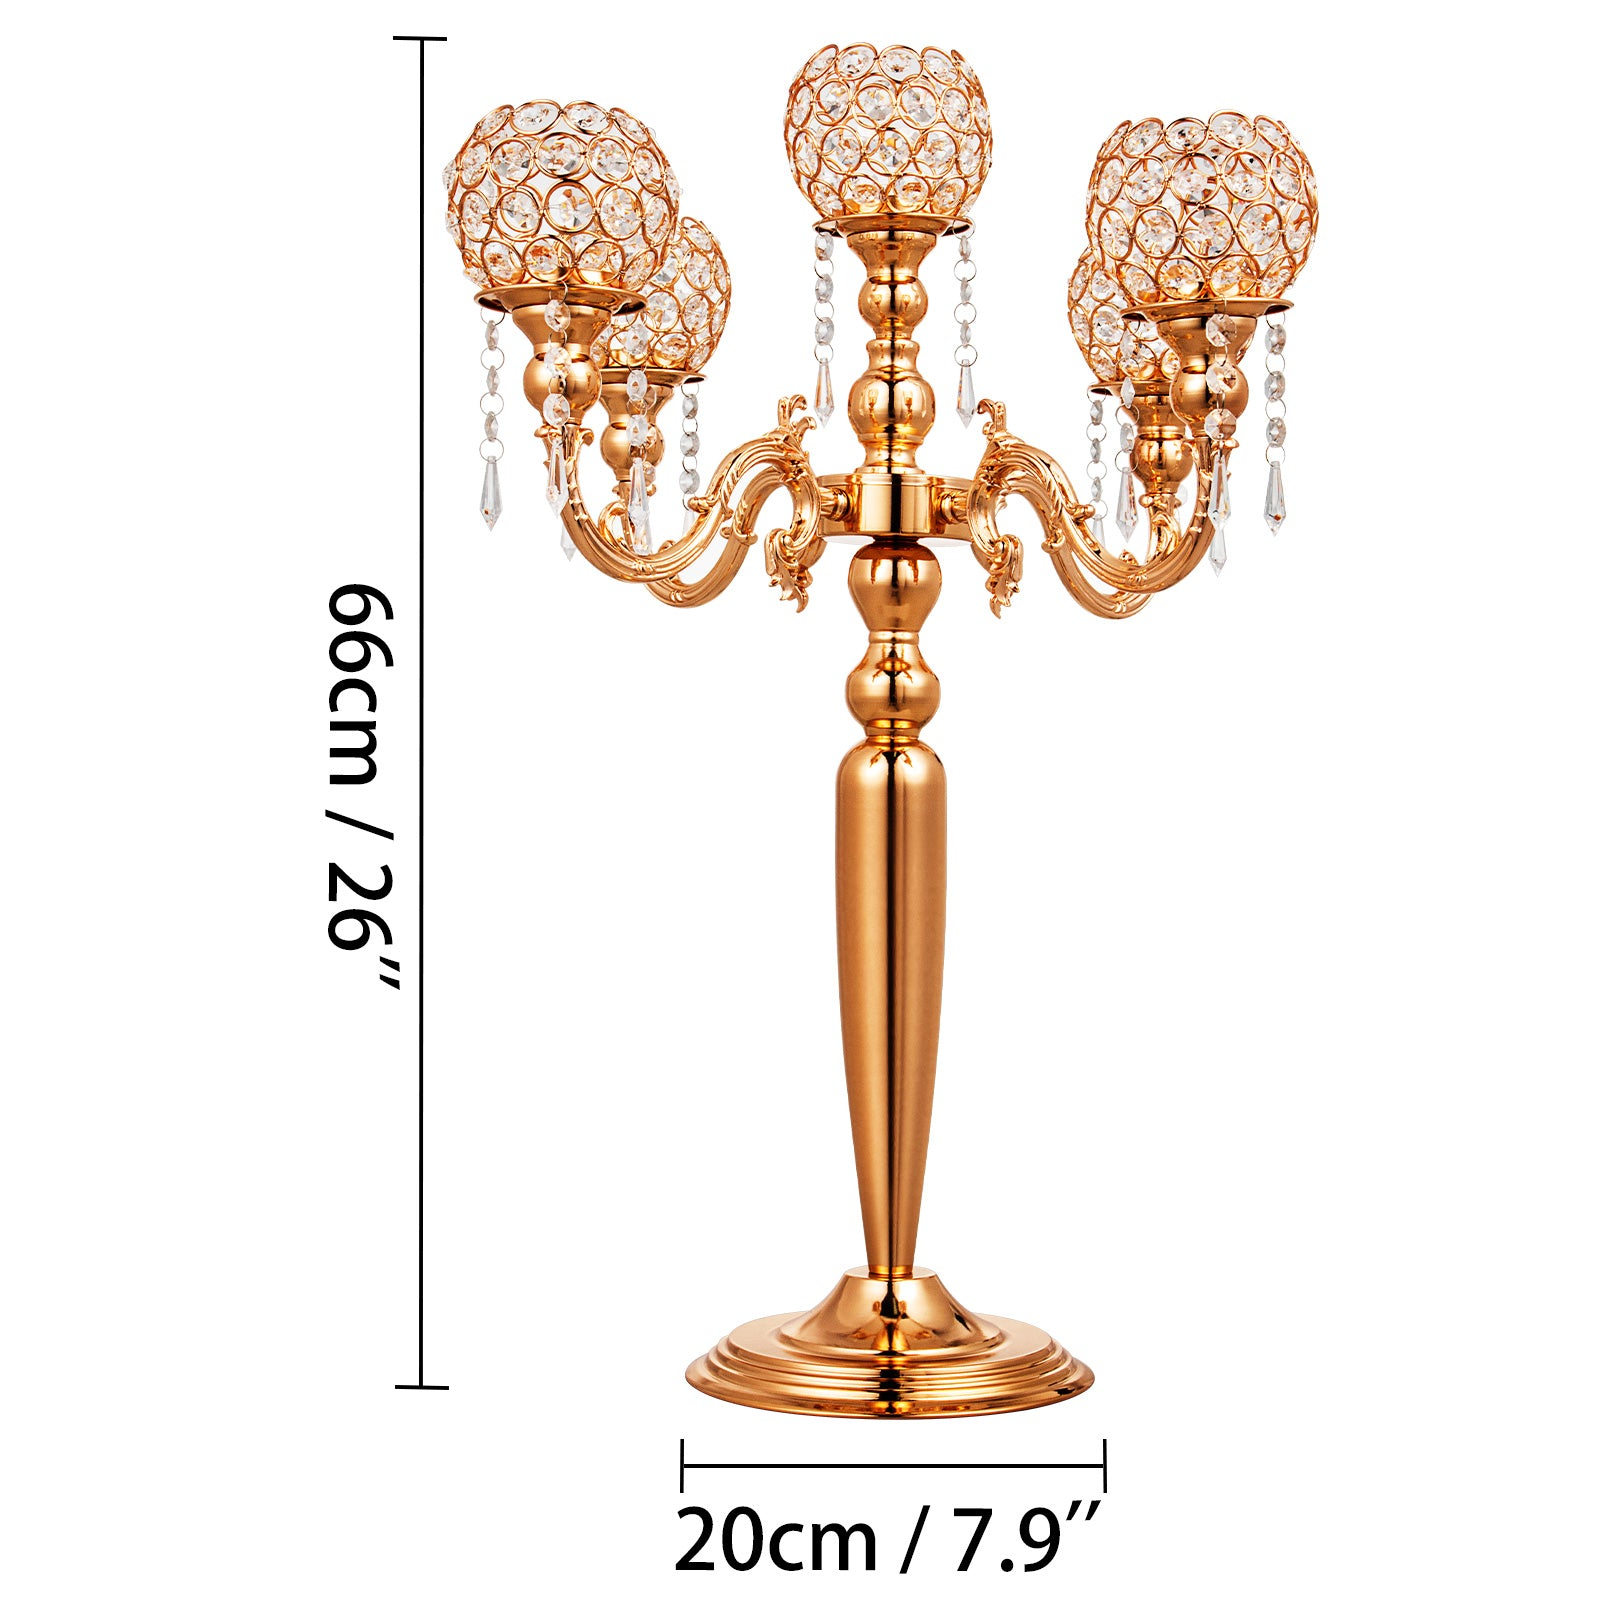 5 Arm Candelabra Candle Holder 26 Inch Wedding Centerpieces With Crystal Globe